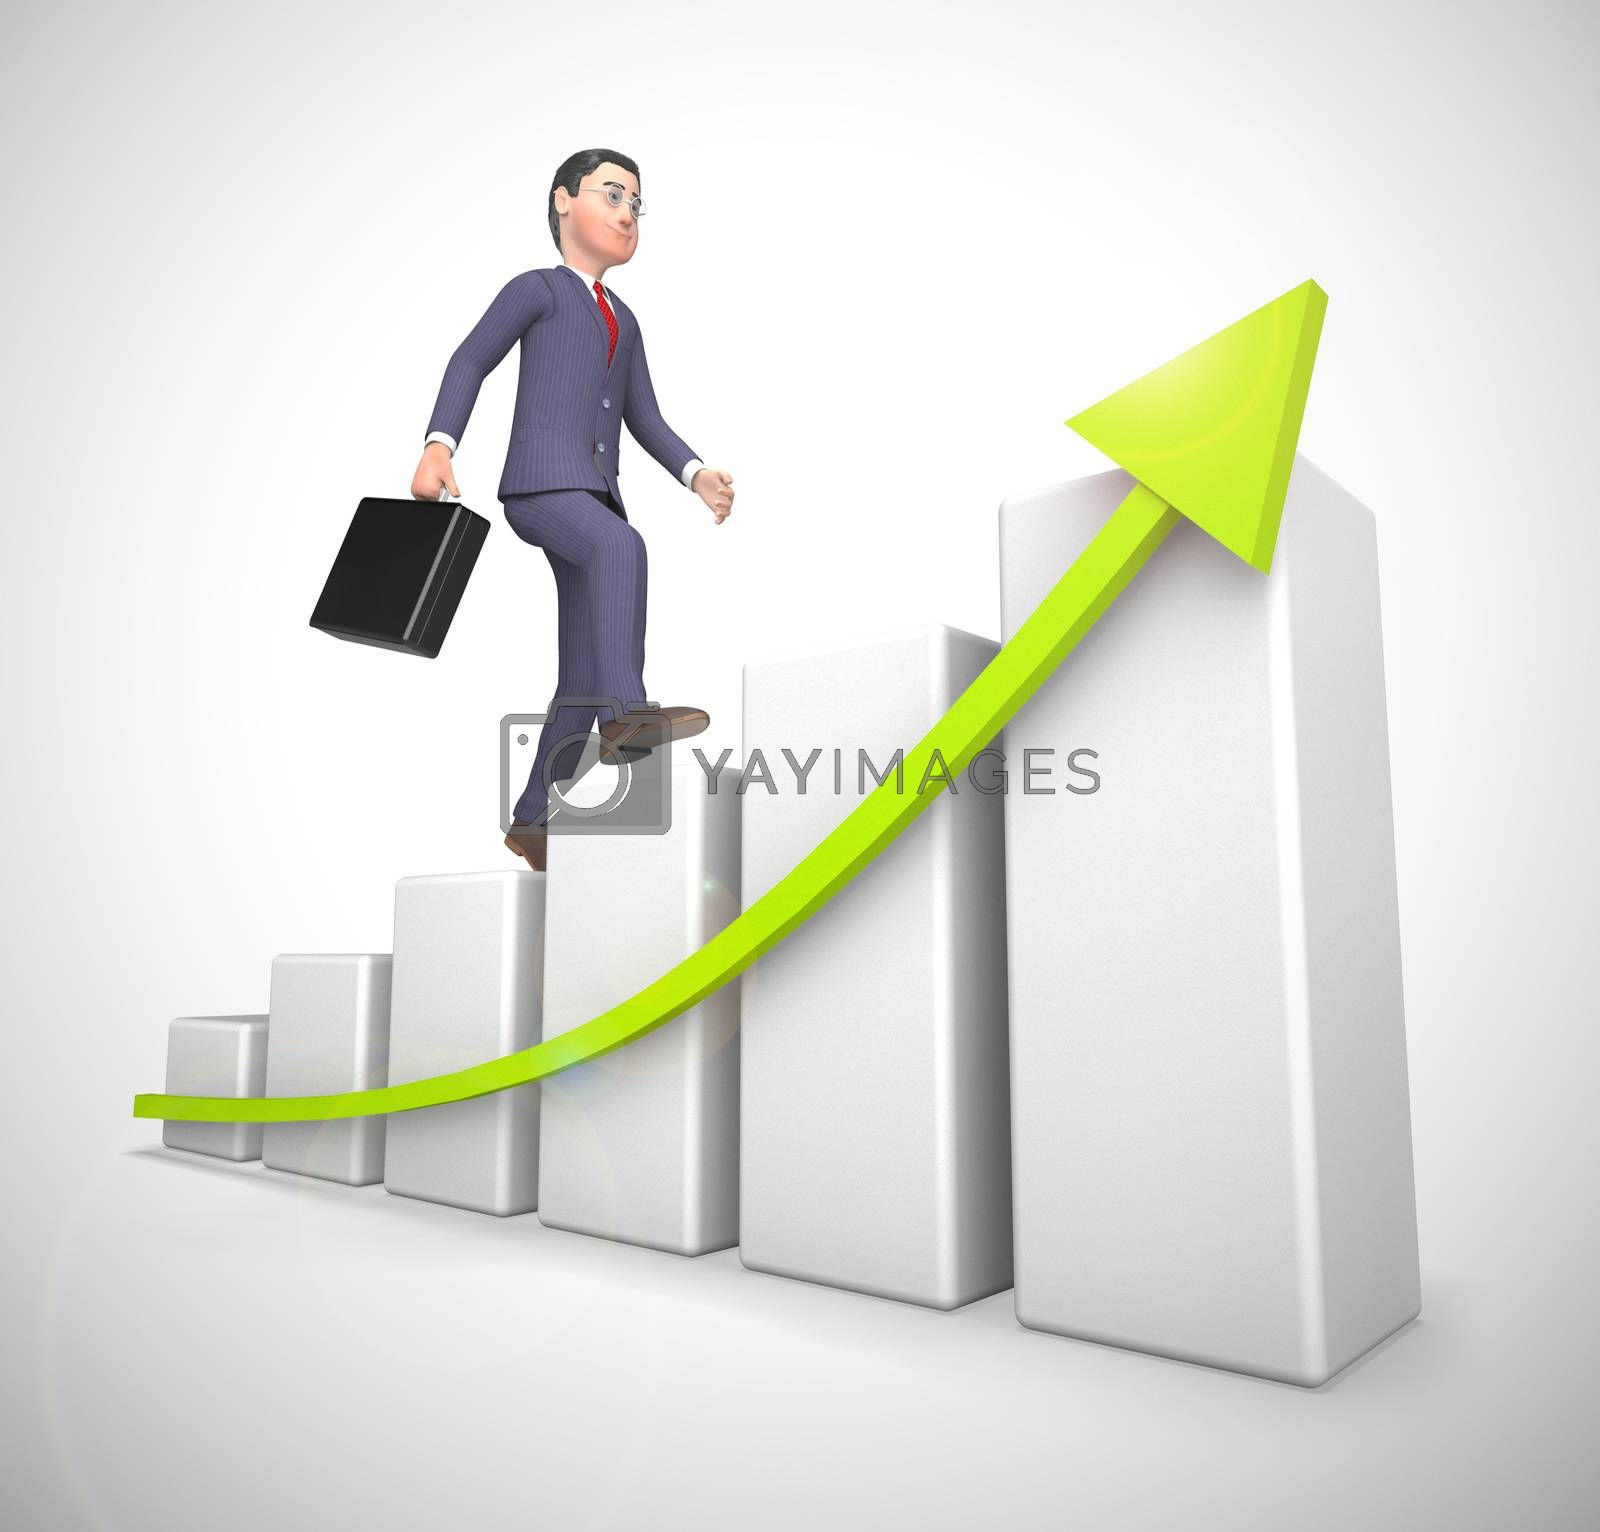 Graph going upwards means success and increased profits. Business growing and trends higher for gain - 3d illustration